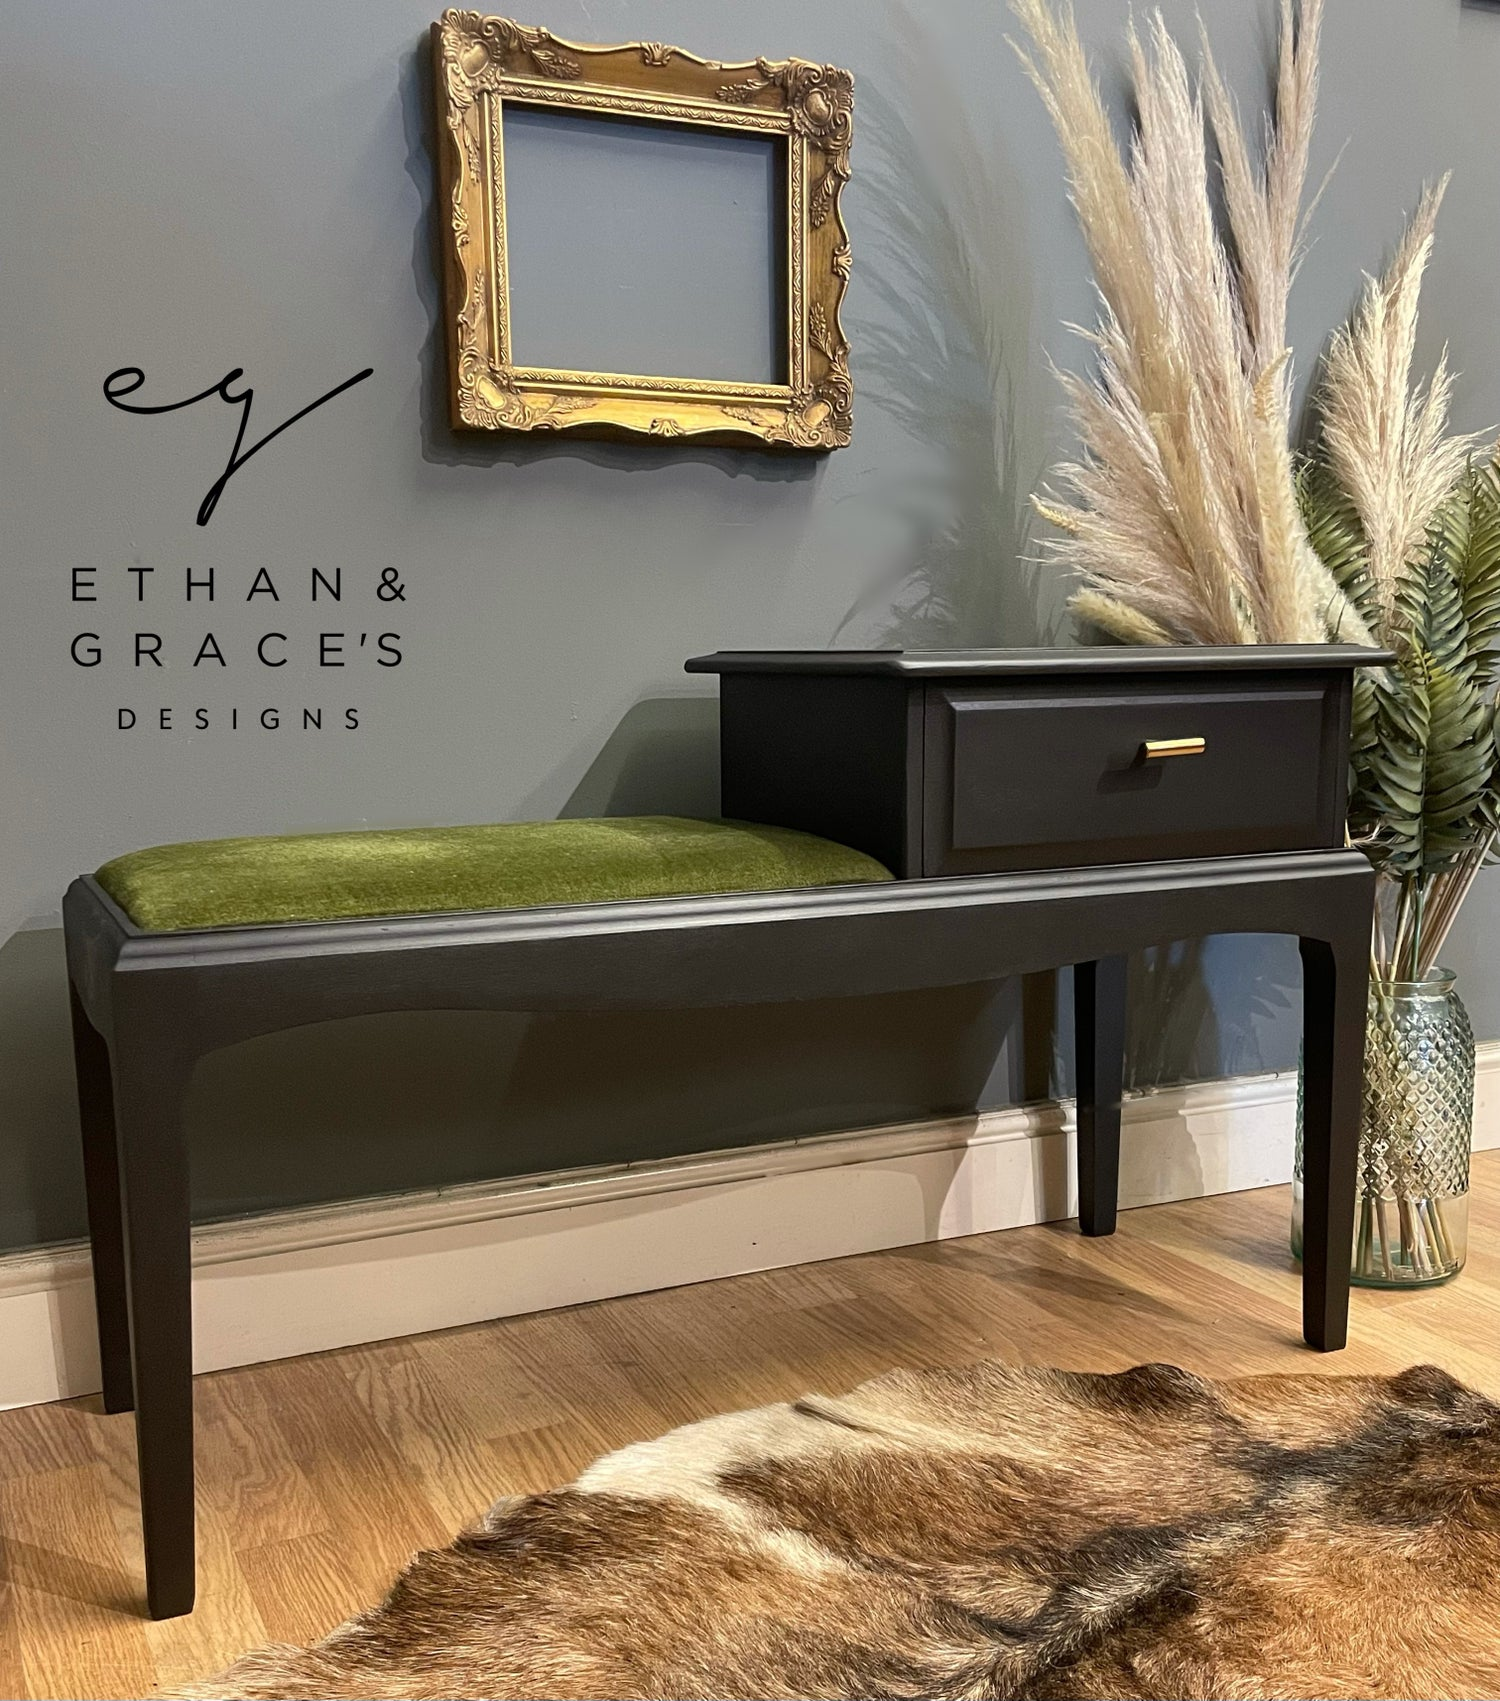 Image of Black green & gold telephone table